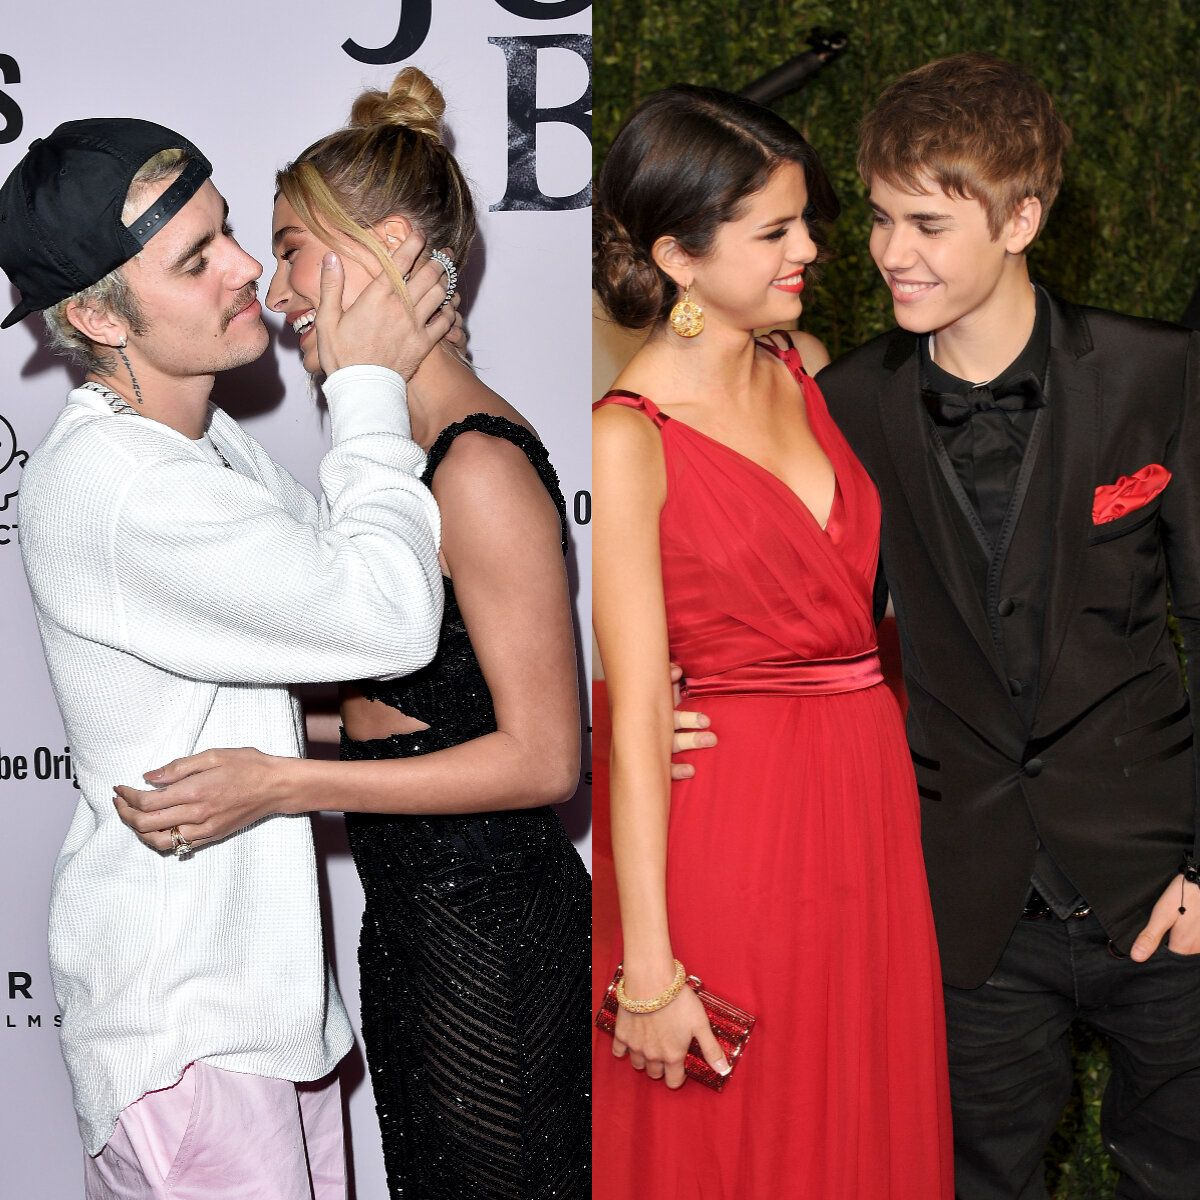 Selena Gomez S Creepy Message To Justin Bieber Cooking Show Shade Her Health And More Updates Coming In 2020 Selena Gomez Selena Justin Bieber